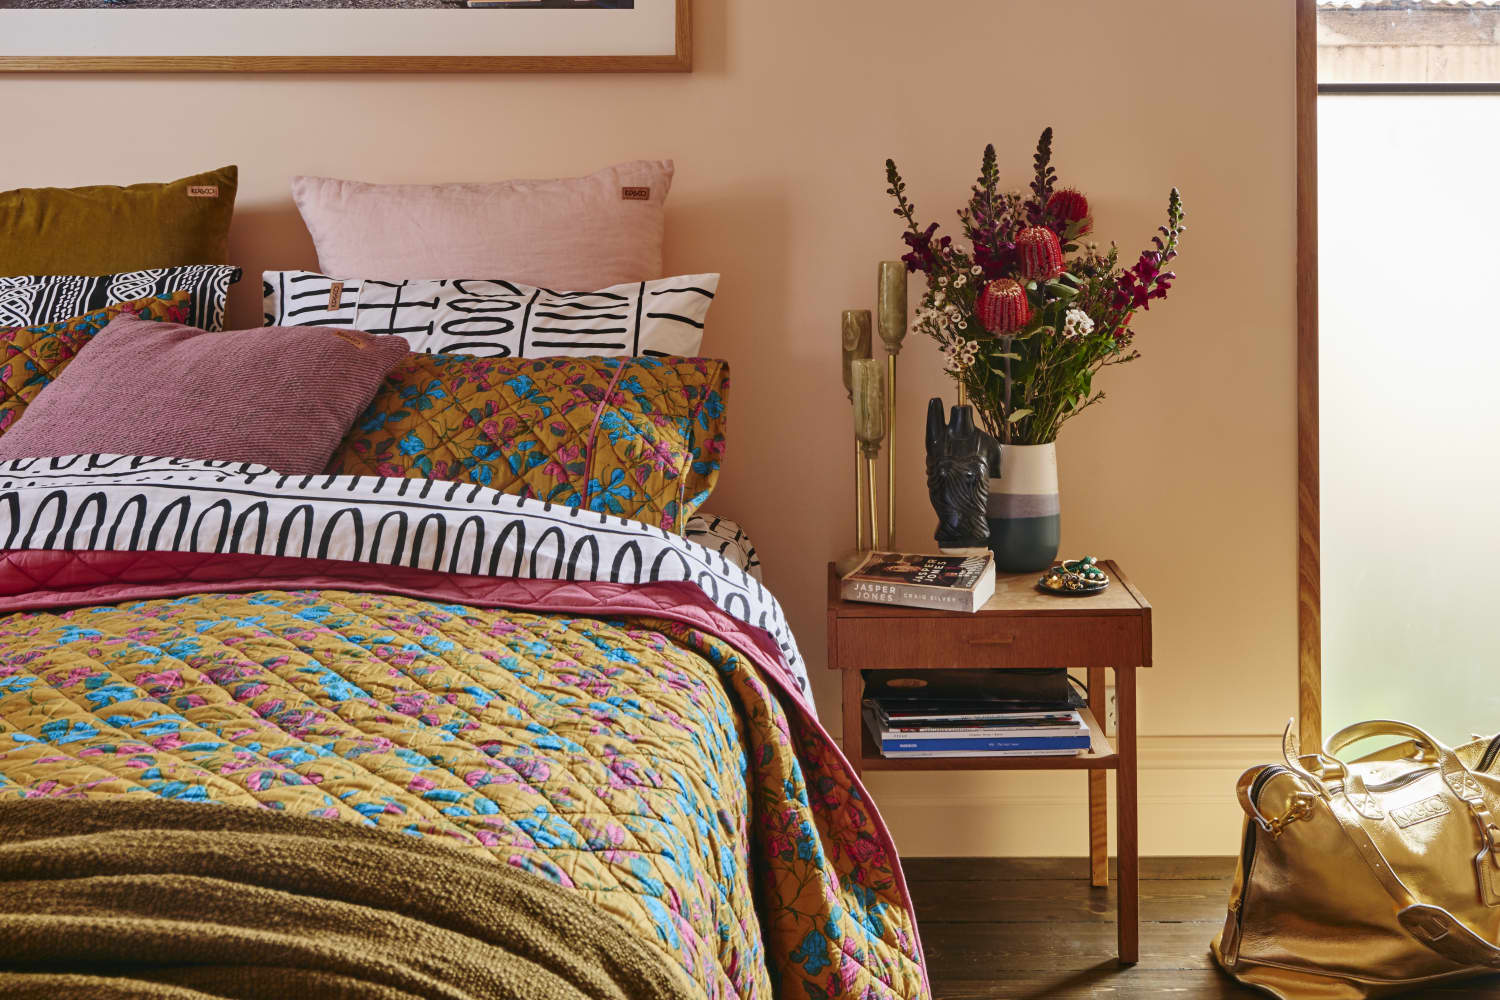 12 Romantic Bedroom Ideas How To Add Romance To Bedroom Decorating Apartment Therapy